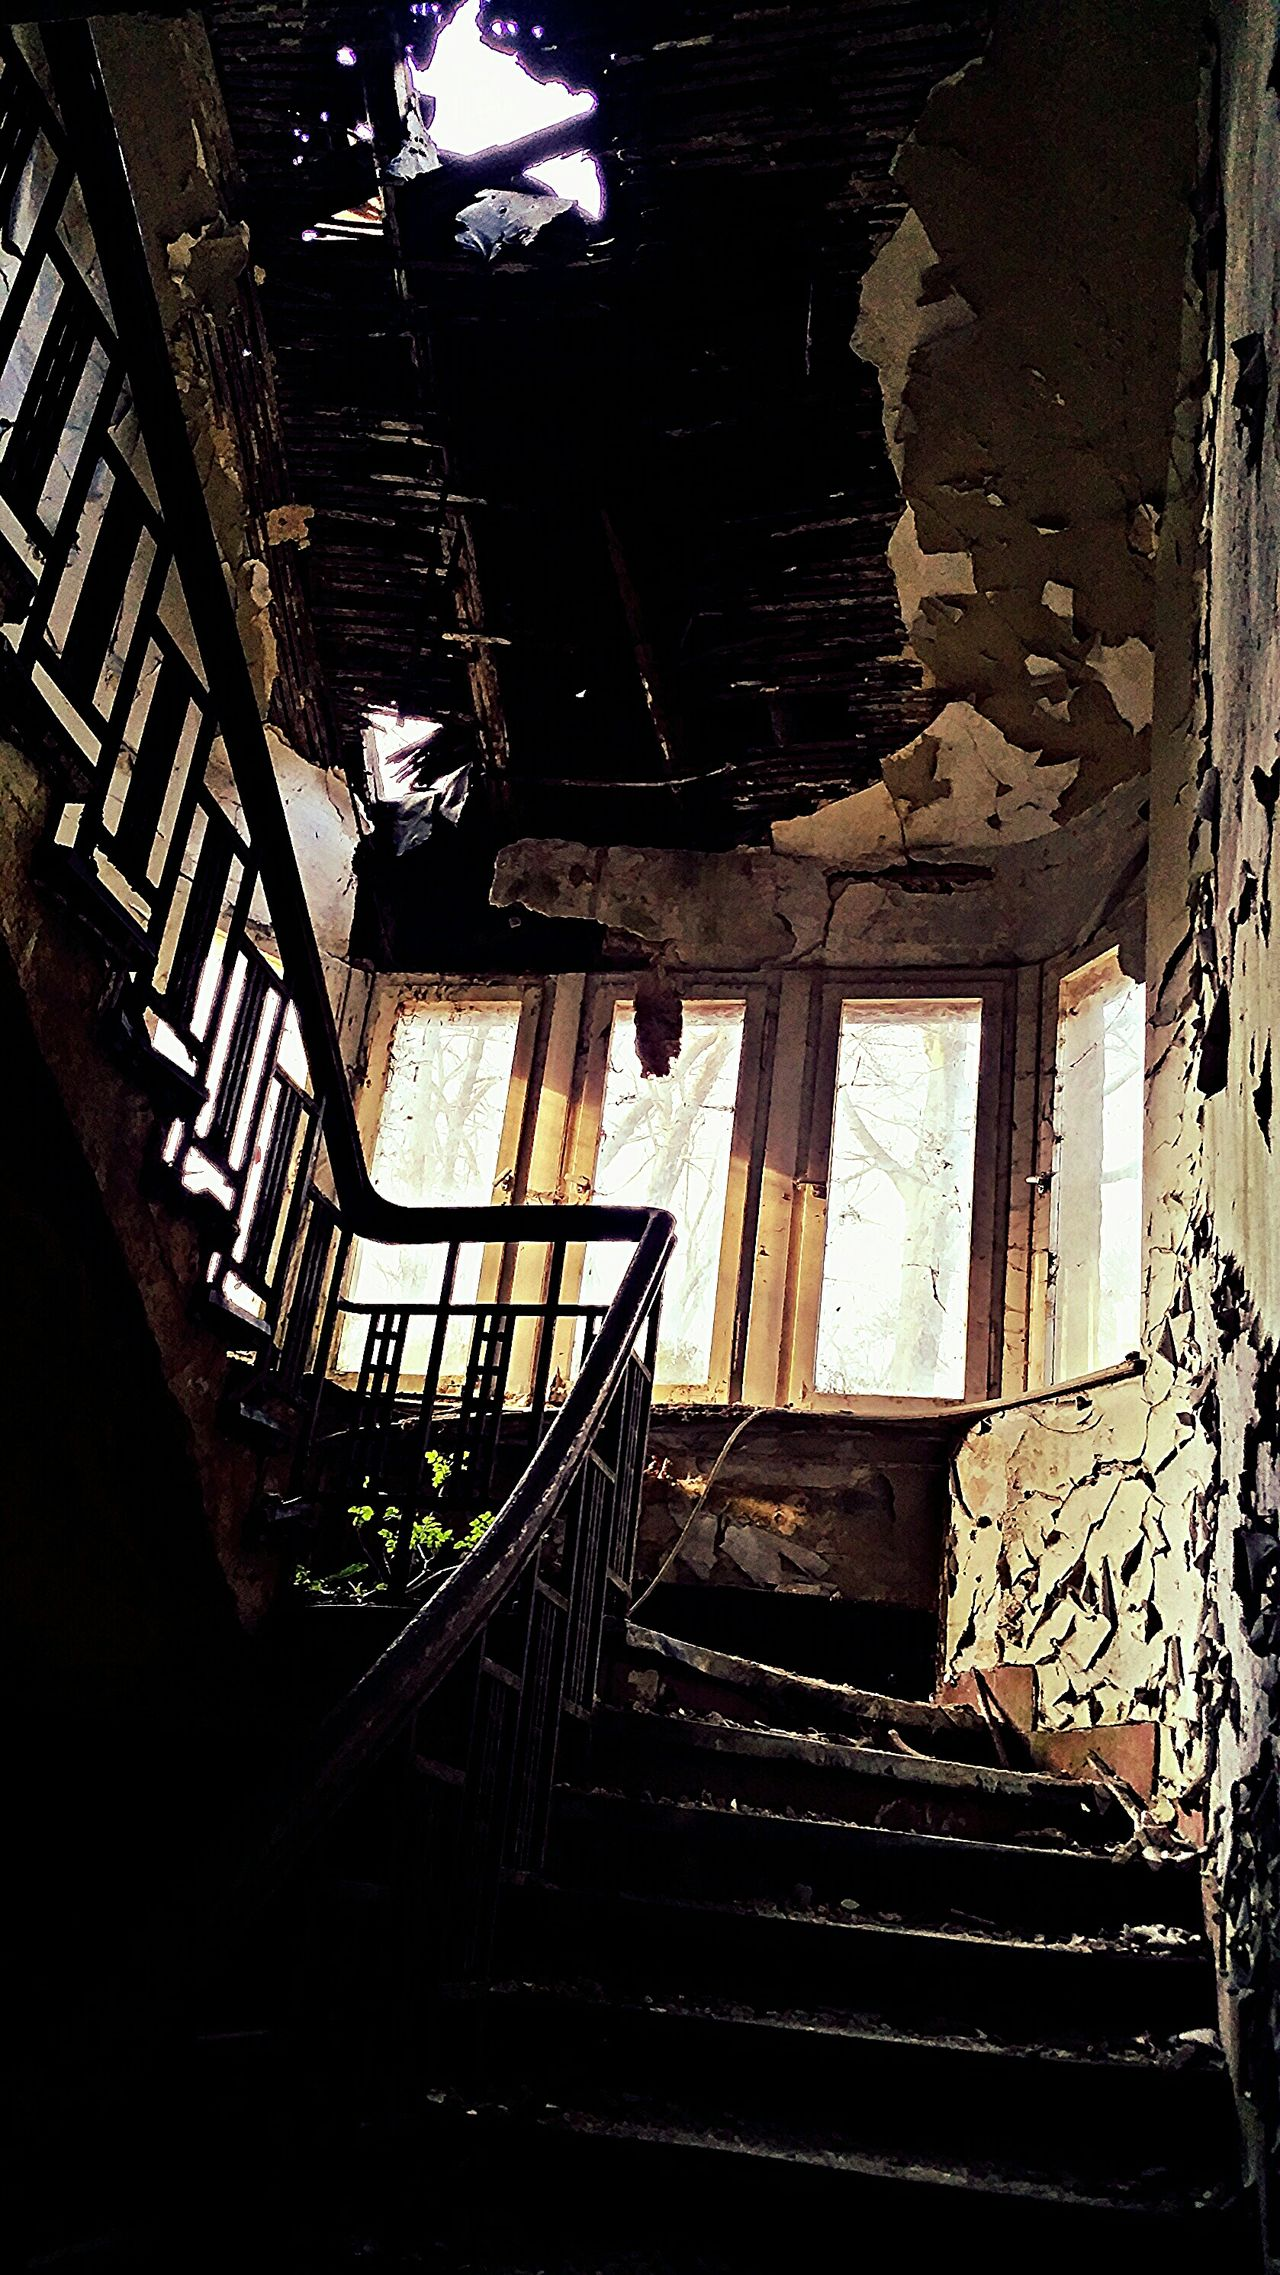 it looks a littlebit like the ghost from the ghostbusters is in the sealing Hanging Out Taking Photos Enjoying Life Urbanphotography Urbexexplorer Seeing The Sites Enjoying The View Urbexphotography Demolished Urban Decay Decay Abandoned Places Urbex Decaying Building Demolishing Abandoned Buildings Abandoned Stairs Old House Abandoned Mansion Sunlight, Shades And Shadows Abandoned House Abandoned_junkies Stairways My Favorite Photo